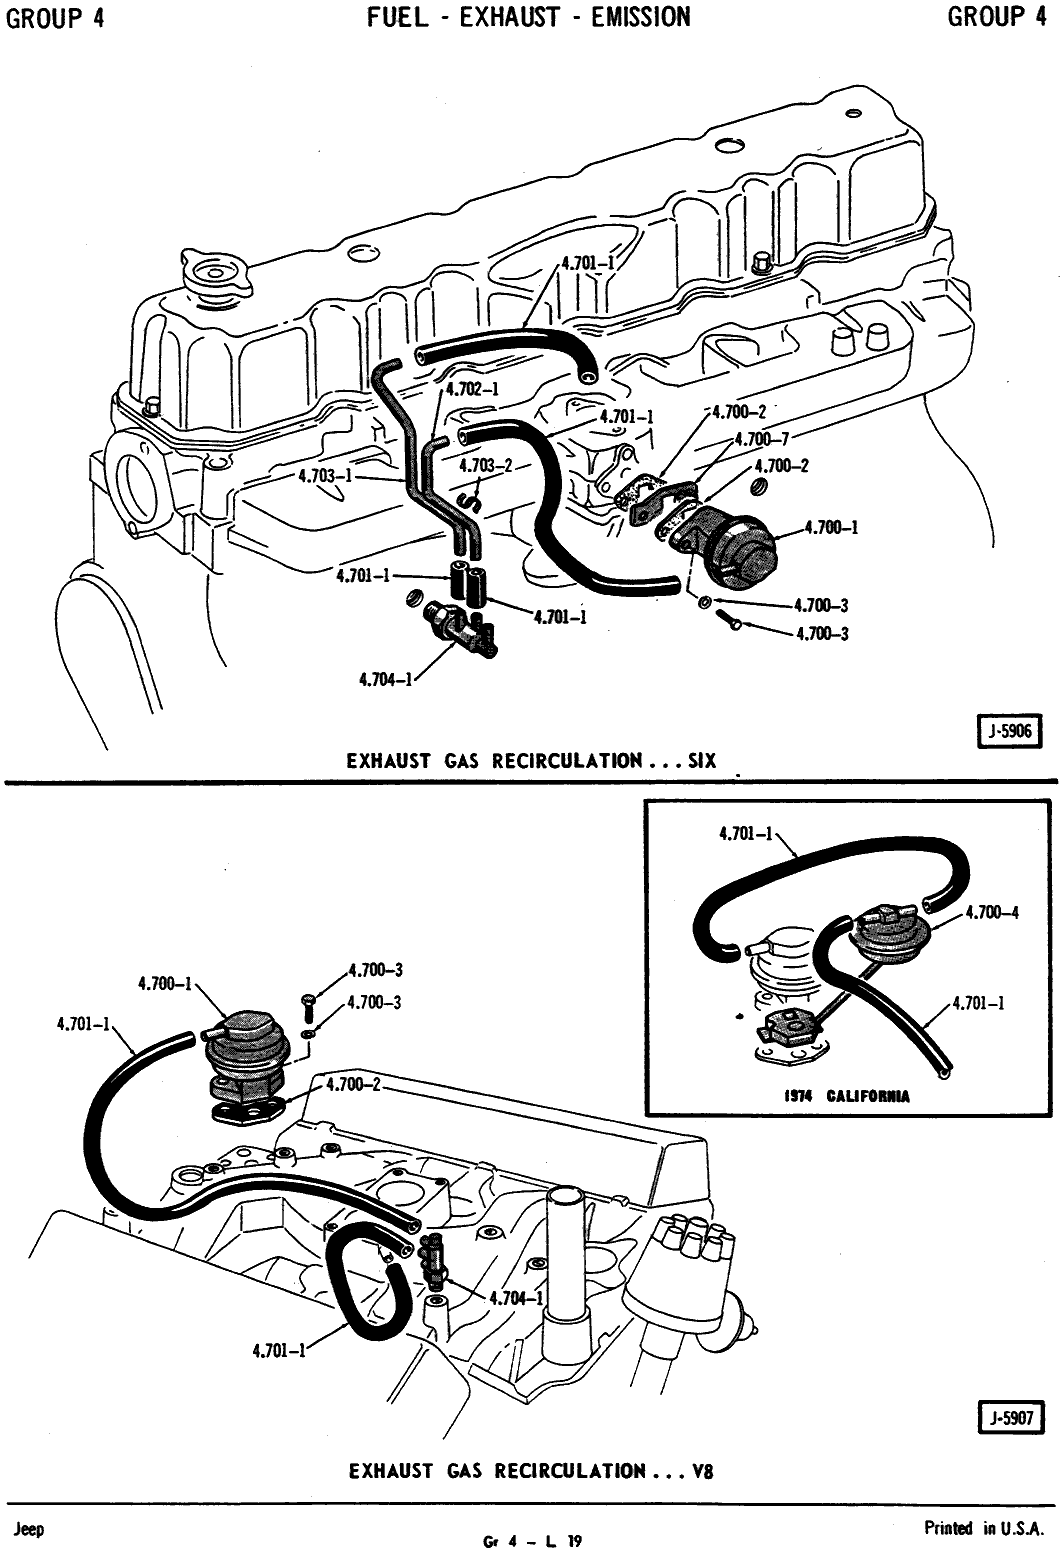 hight resolution of jeep vacuum line diagrams wiring diagram article 1998 jeep cherokee vacuum line diagram jeep 4 0 vacuum line diagram